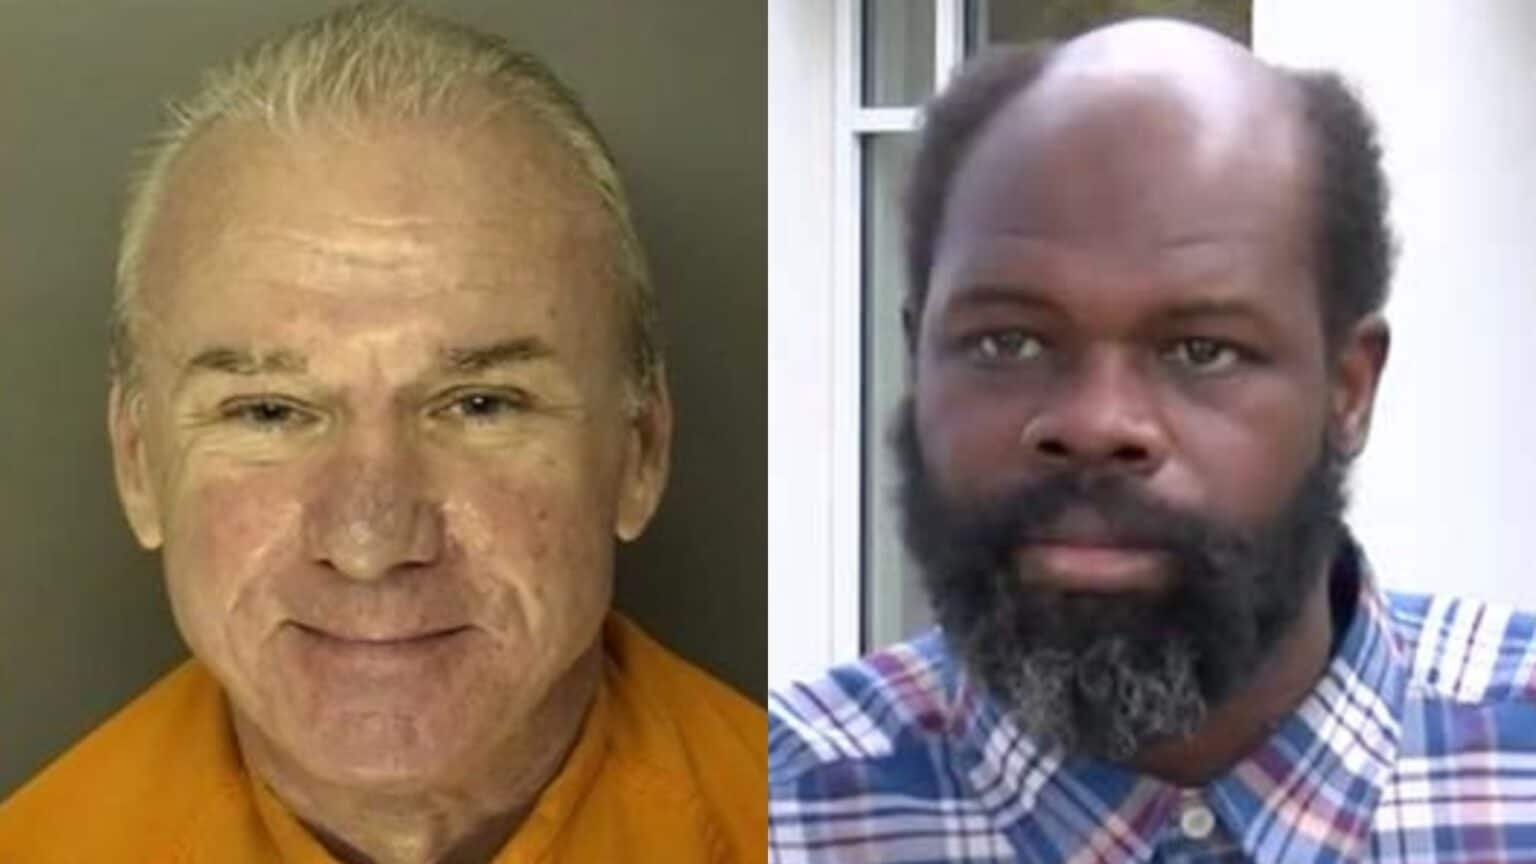 Restaurant manager forced to pay $500K to Black employee he enslaved for years